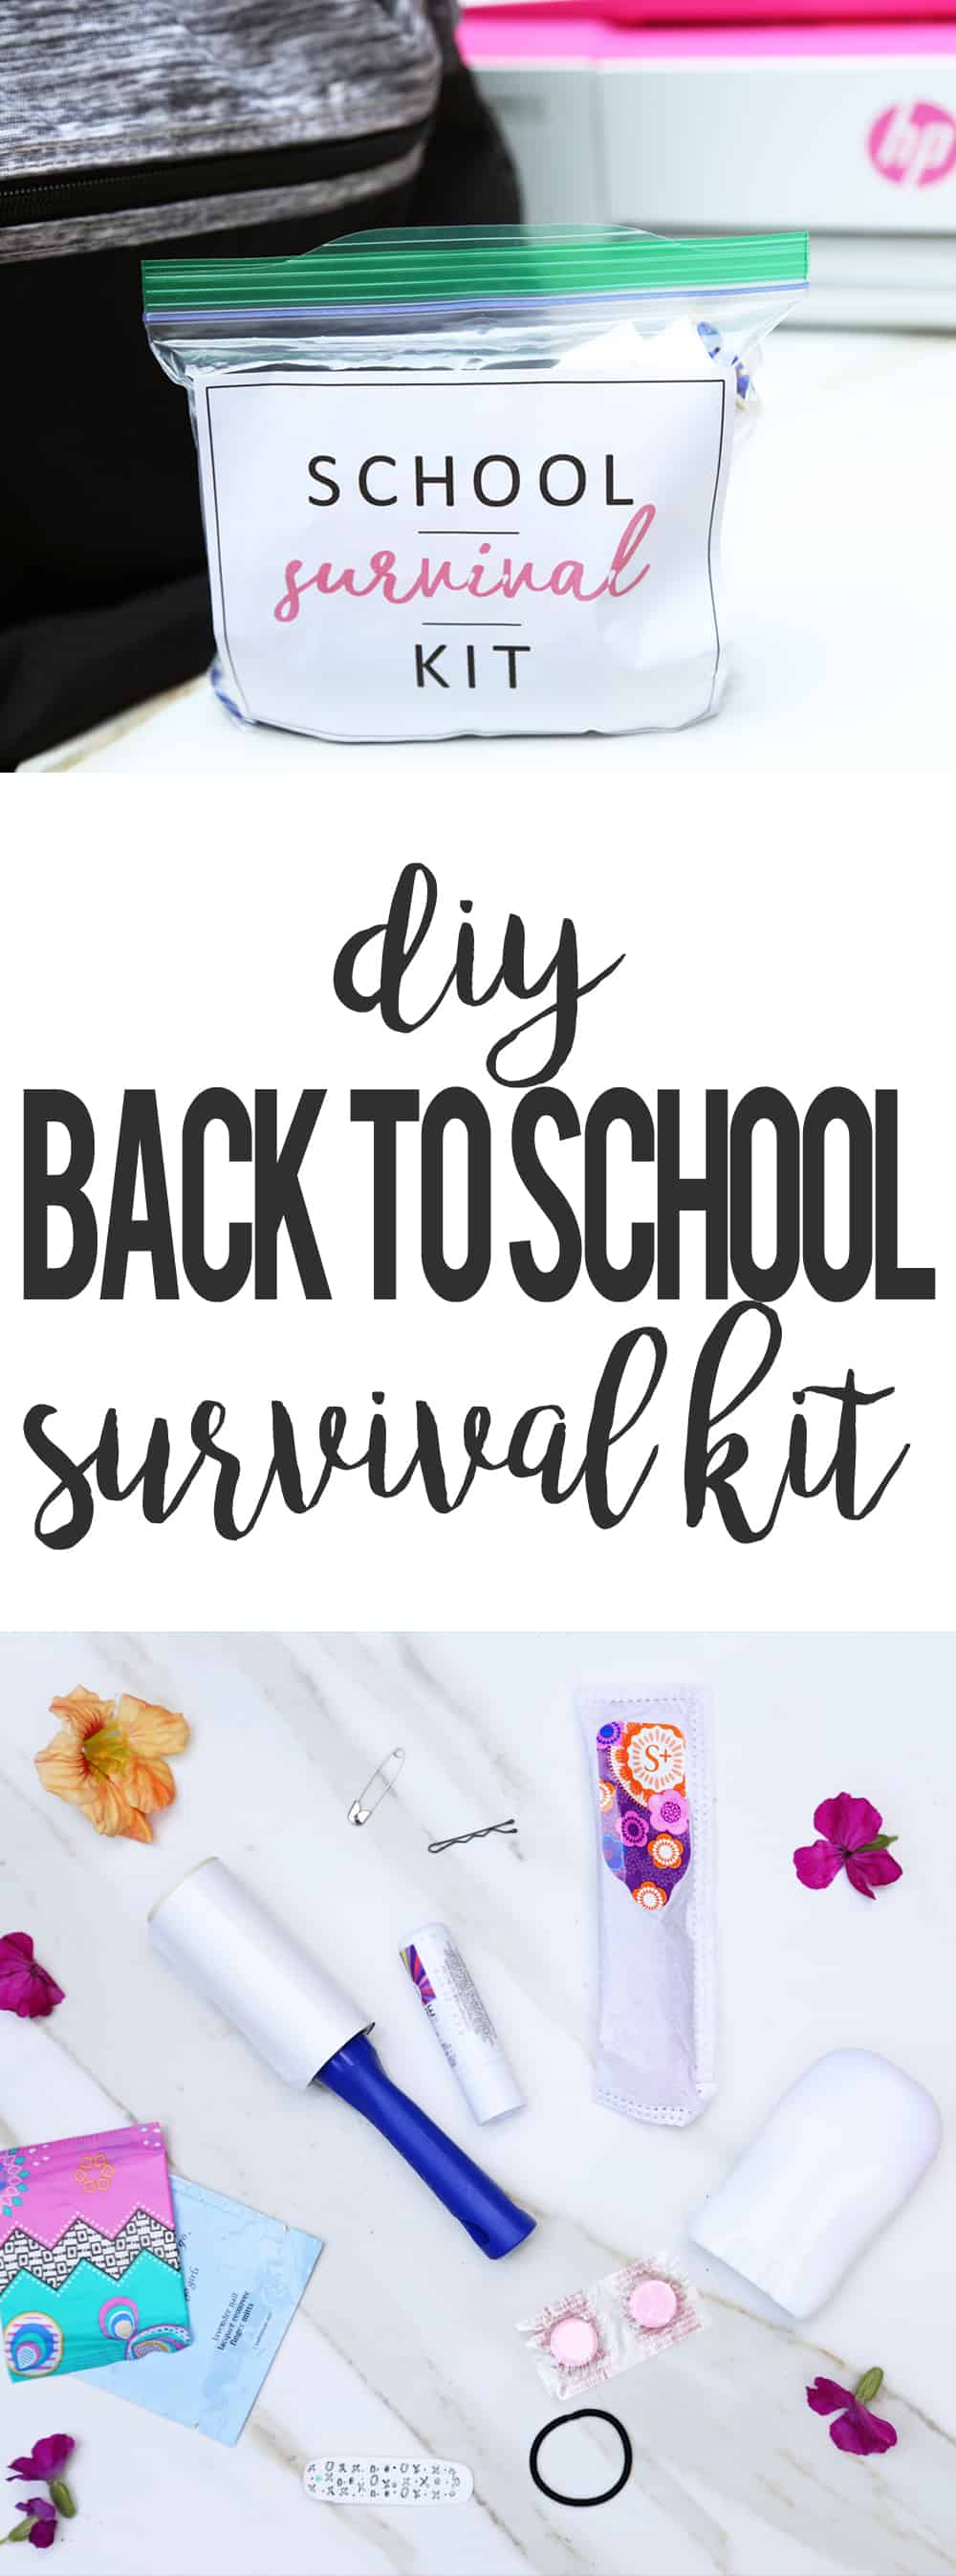 DIY SCHOOL SURVIVAL KIT | ONEARMEDMAMA.COM #CreateWithHP #ad